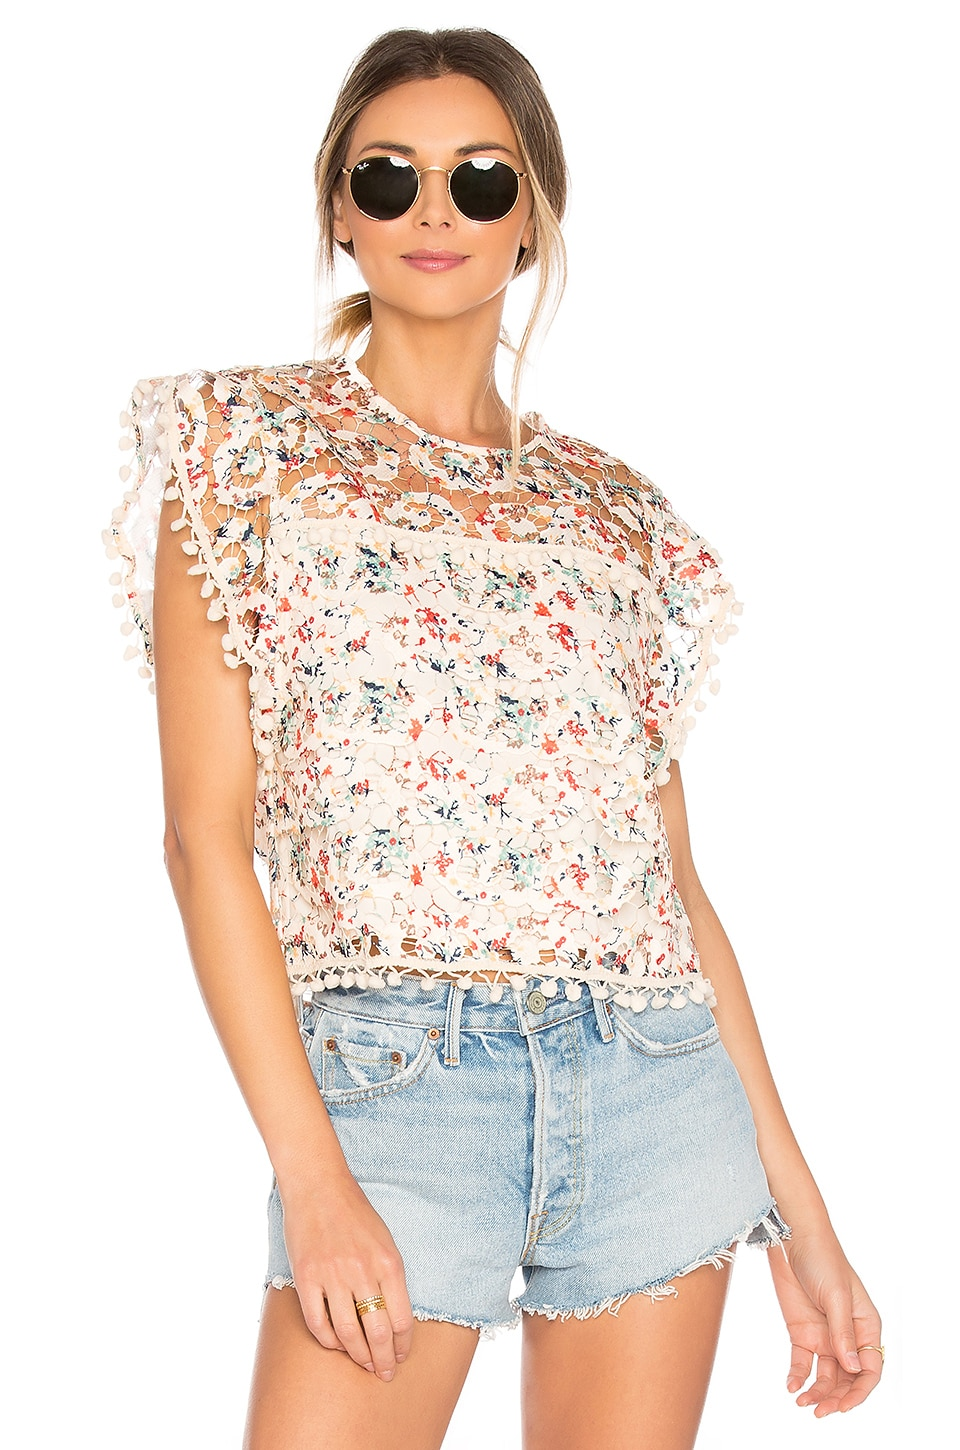 Tularosa Kennedy Top in Rainbow Lace